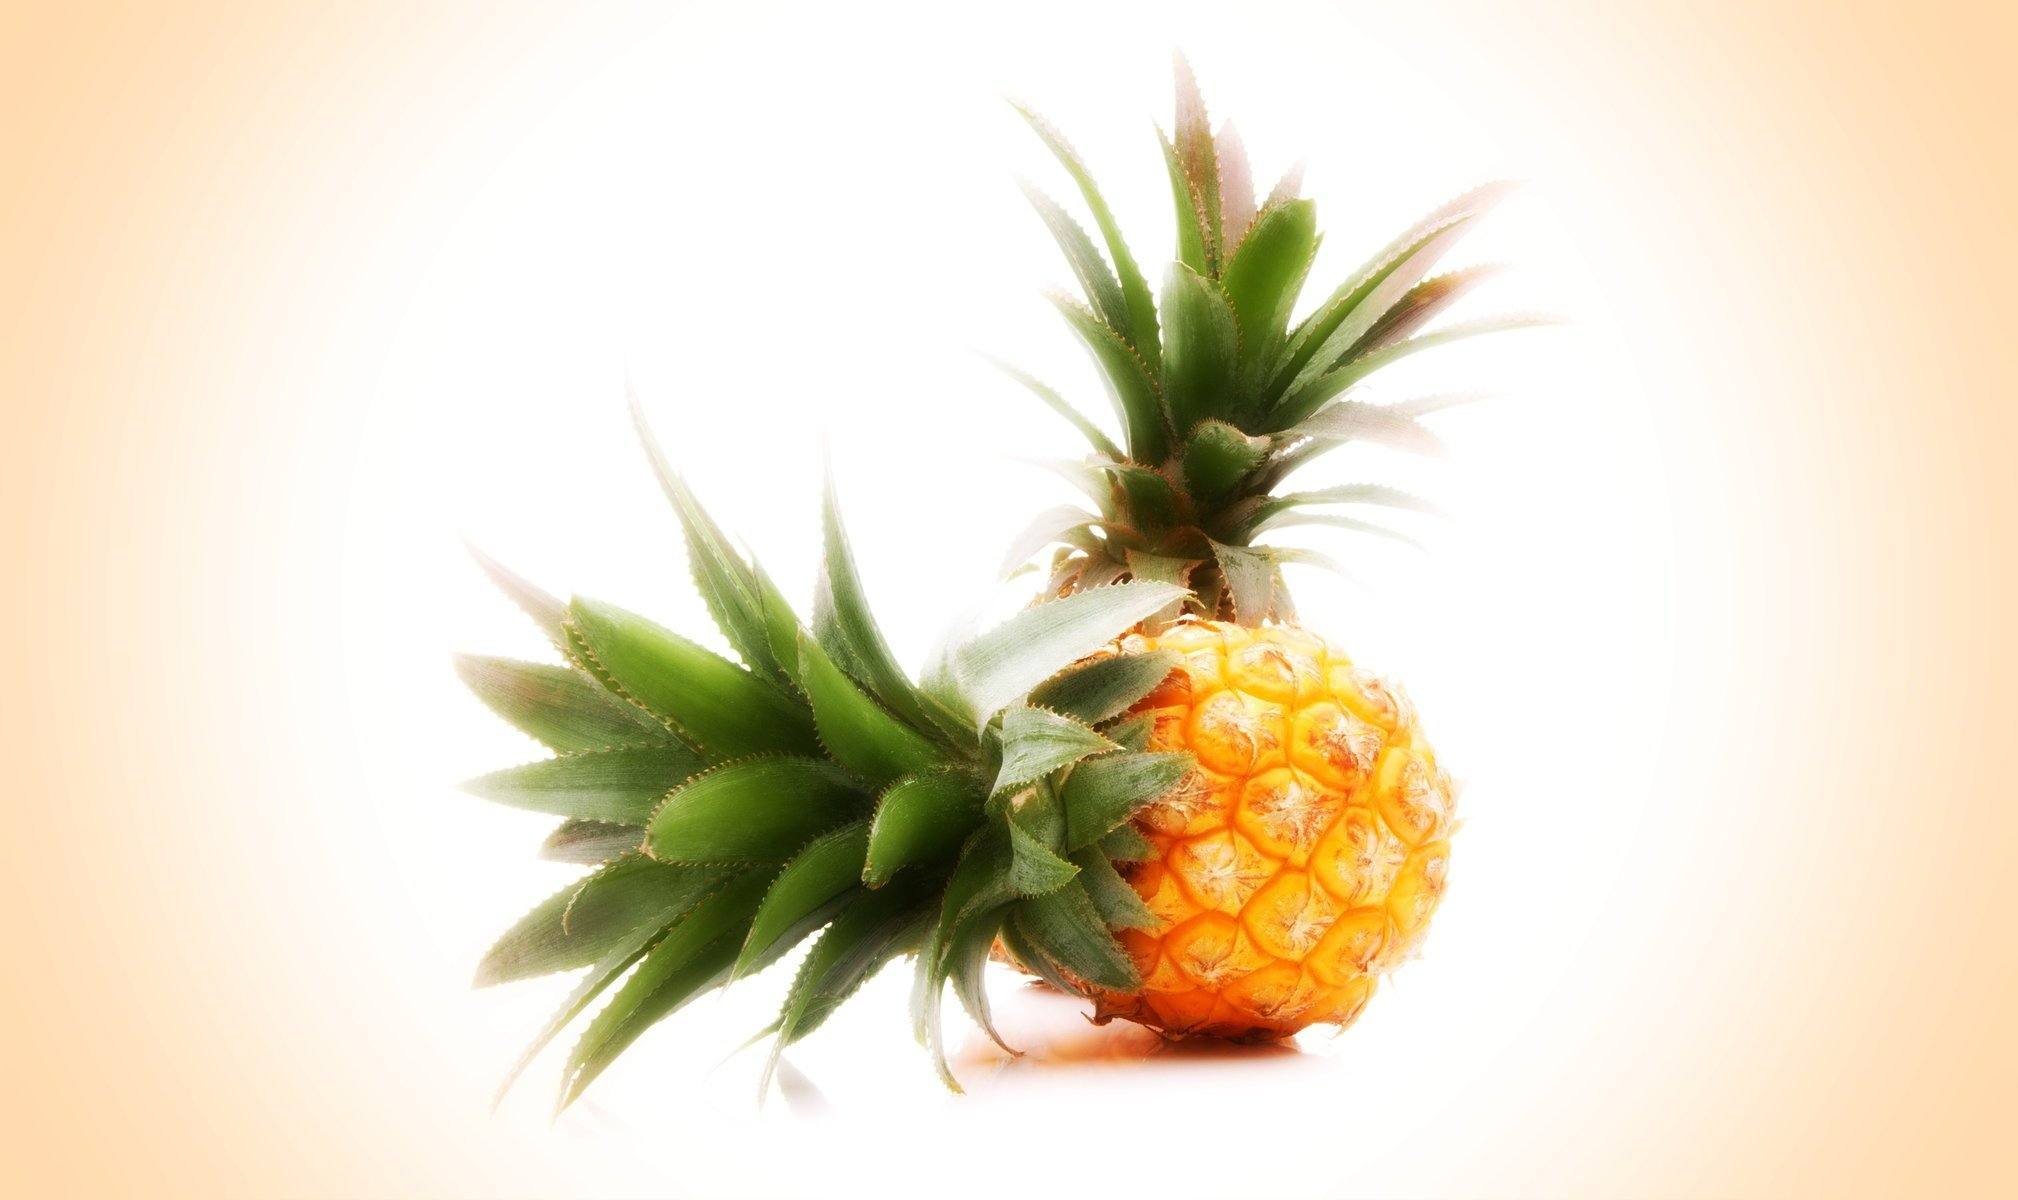 Amazing Wallpaper Macbook Pineapple - pineapple-wallpaper-tumblr-16  Best Photo Reference_628957.jpg